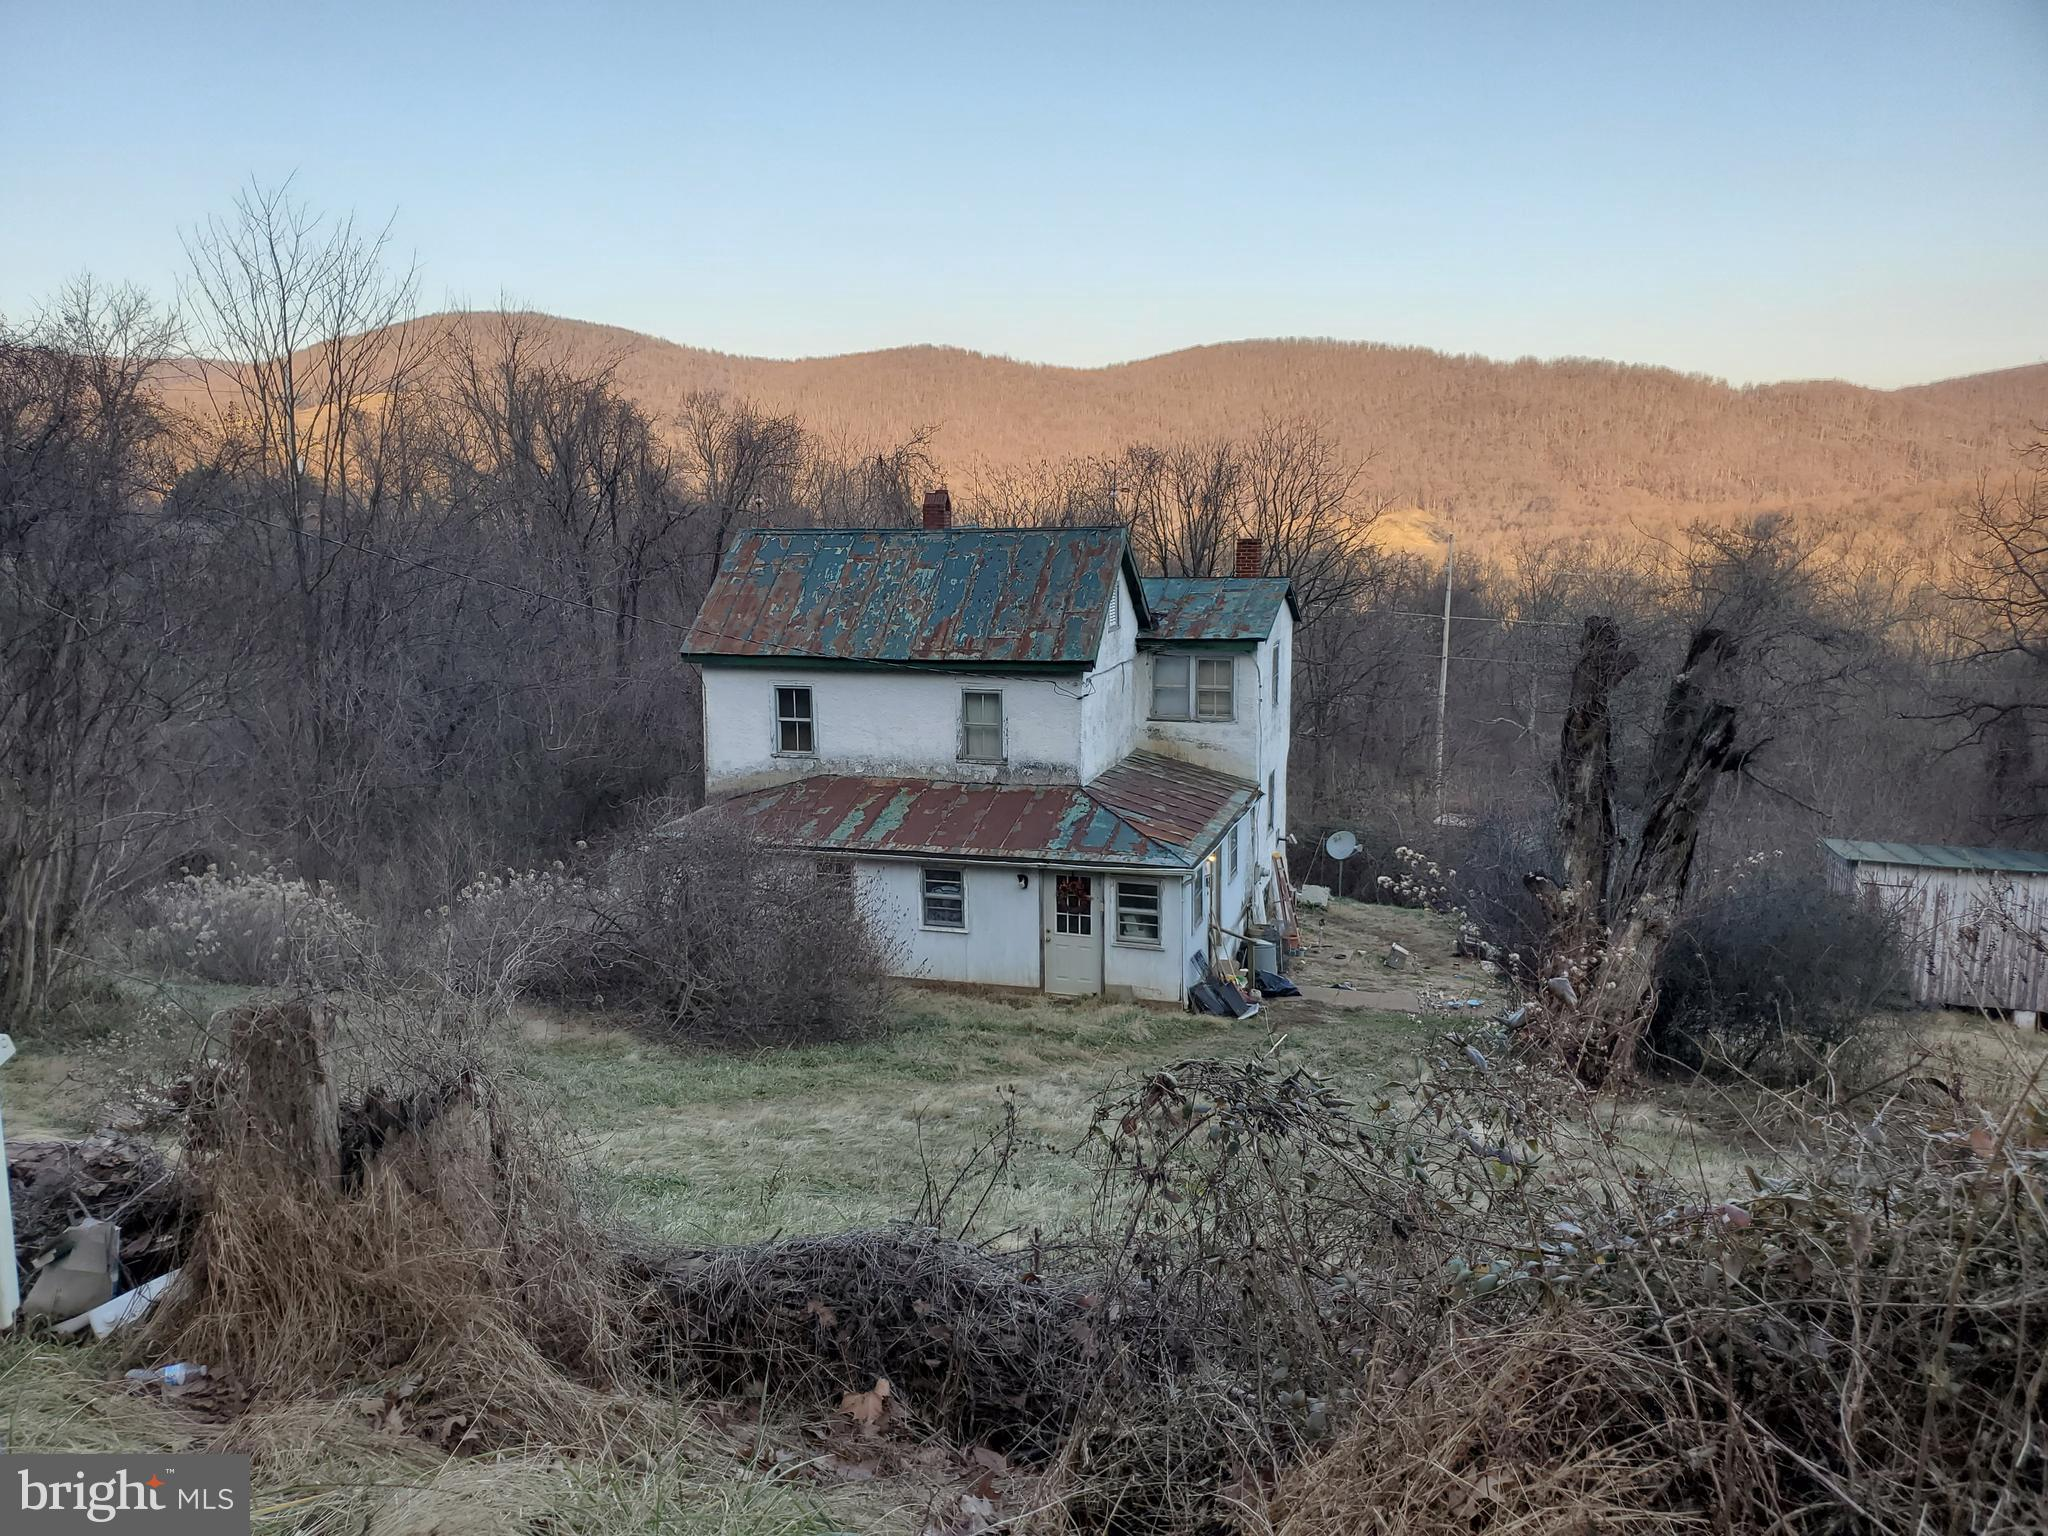 1954 Zachary Taylor Highway, Huntly, VA 22640